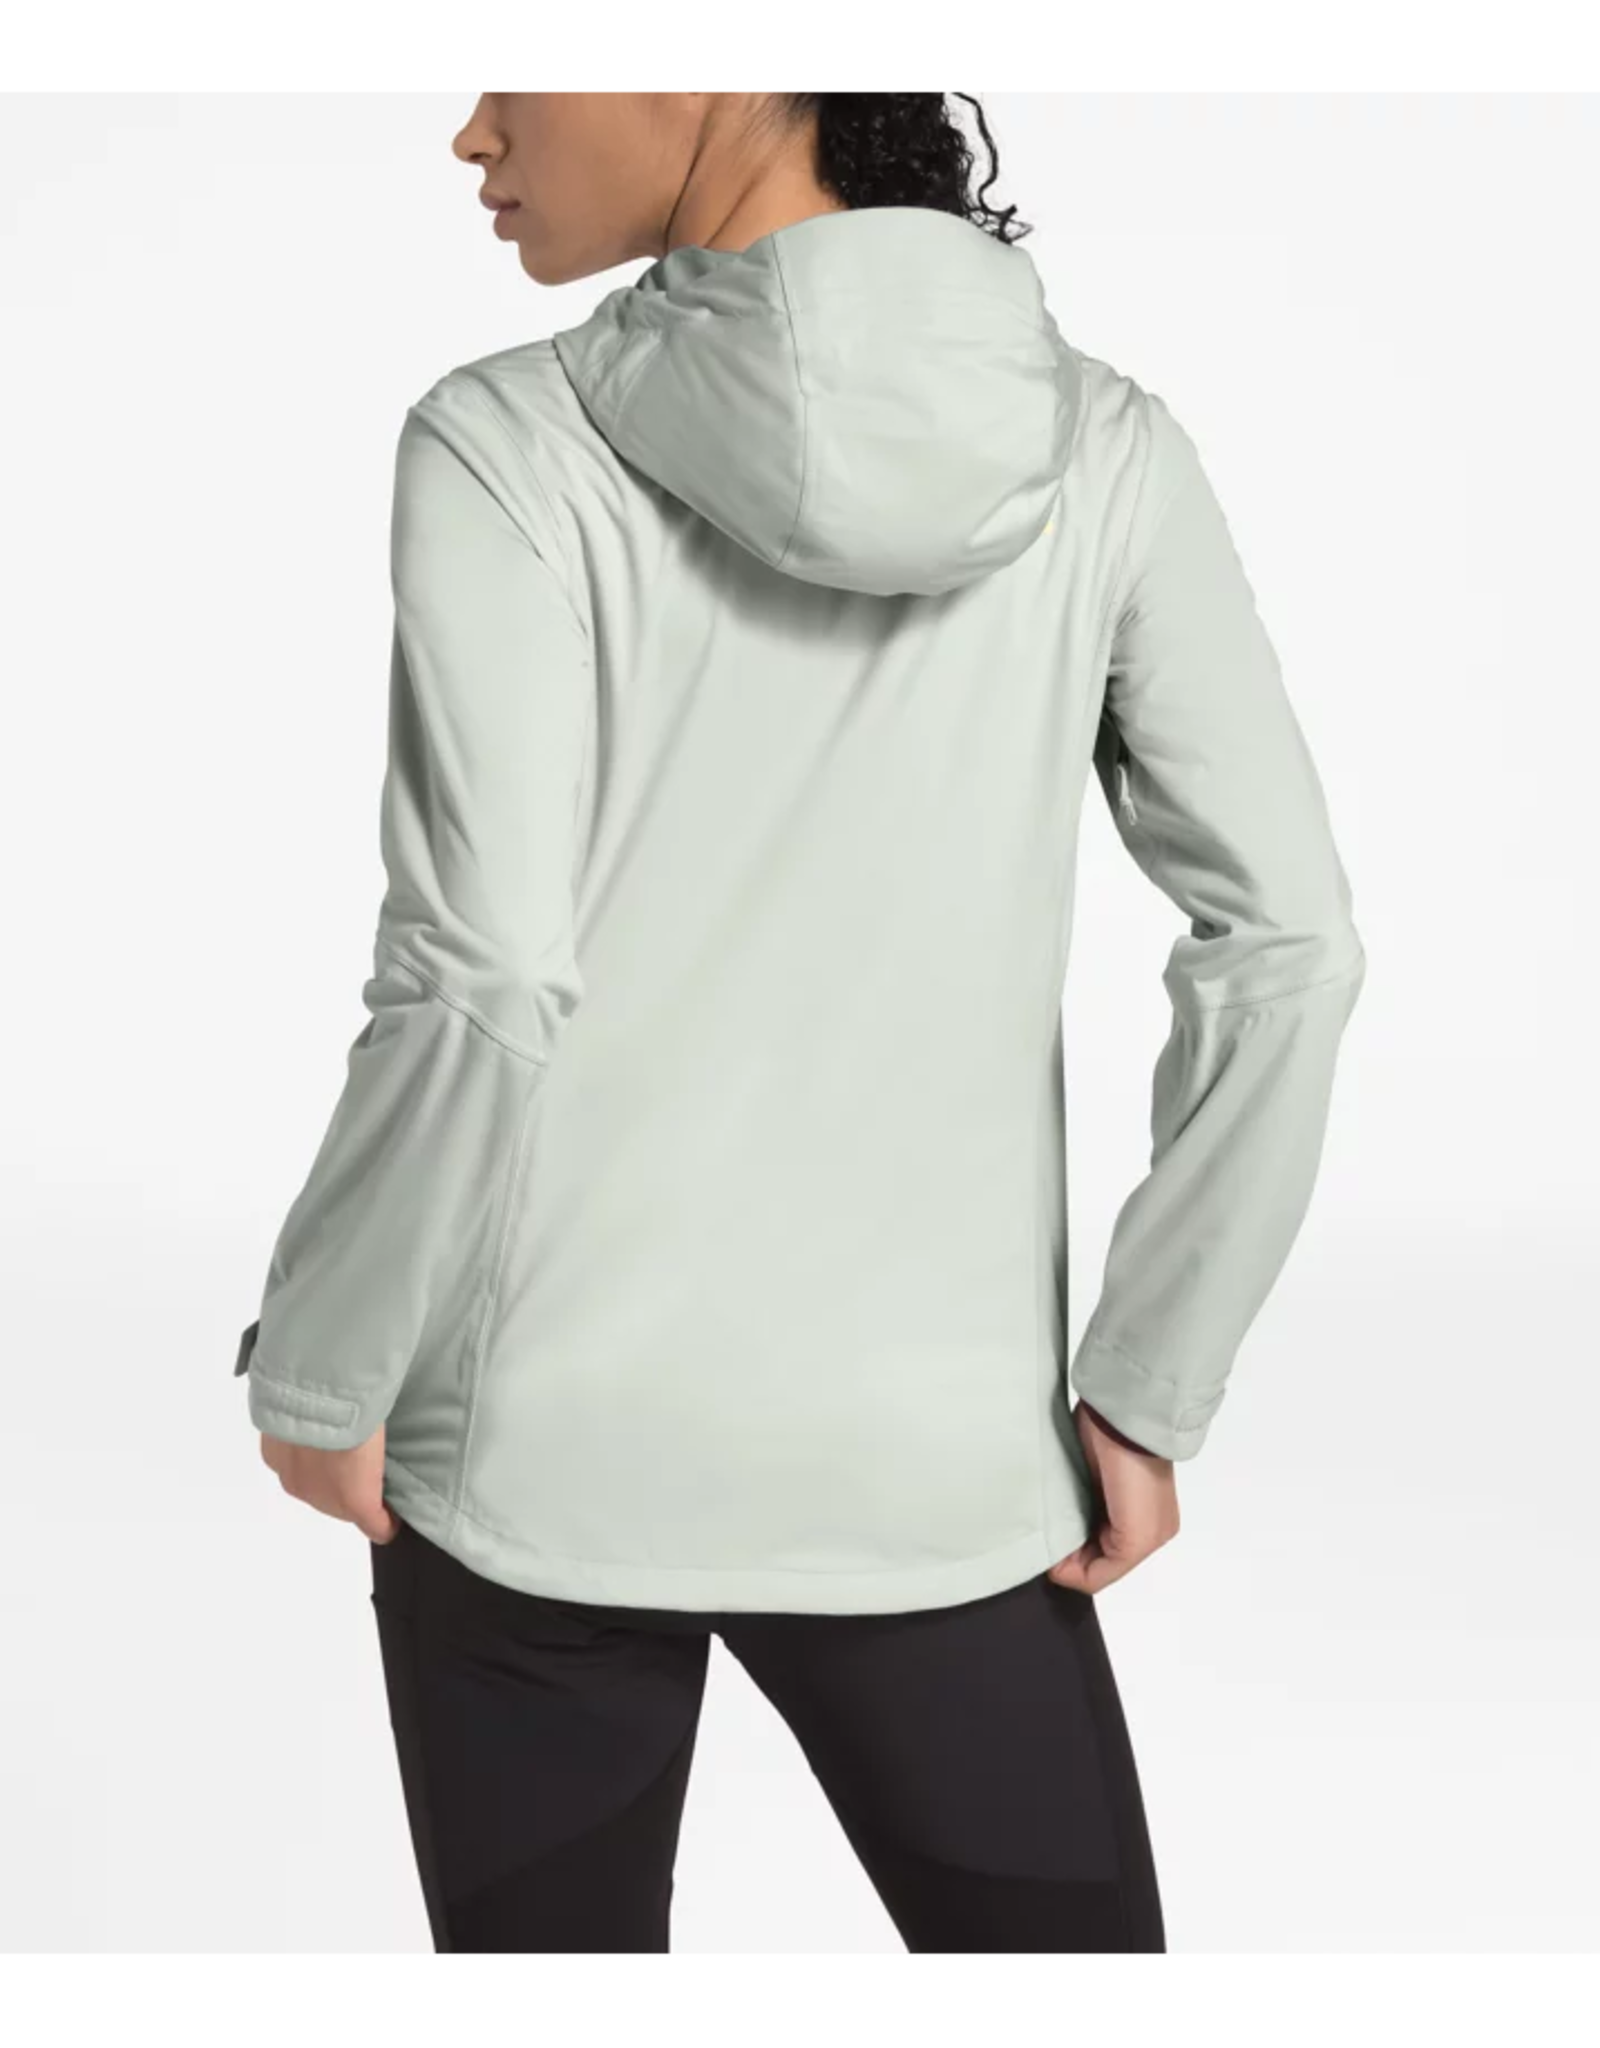 The North Face Women's Allproof Stretch Jacket - ps20